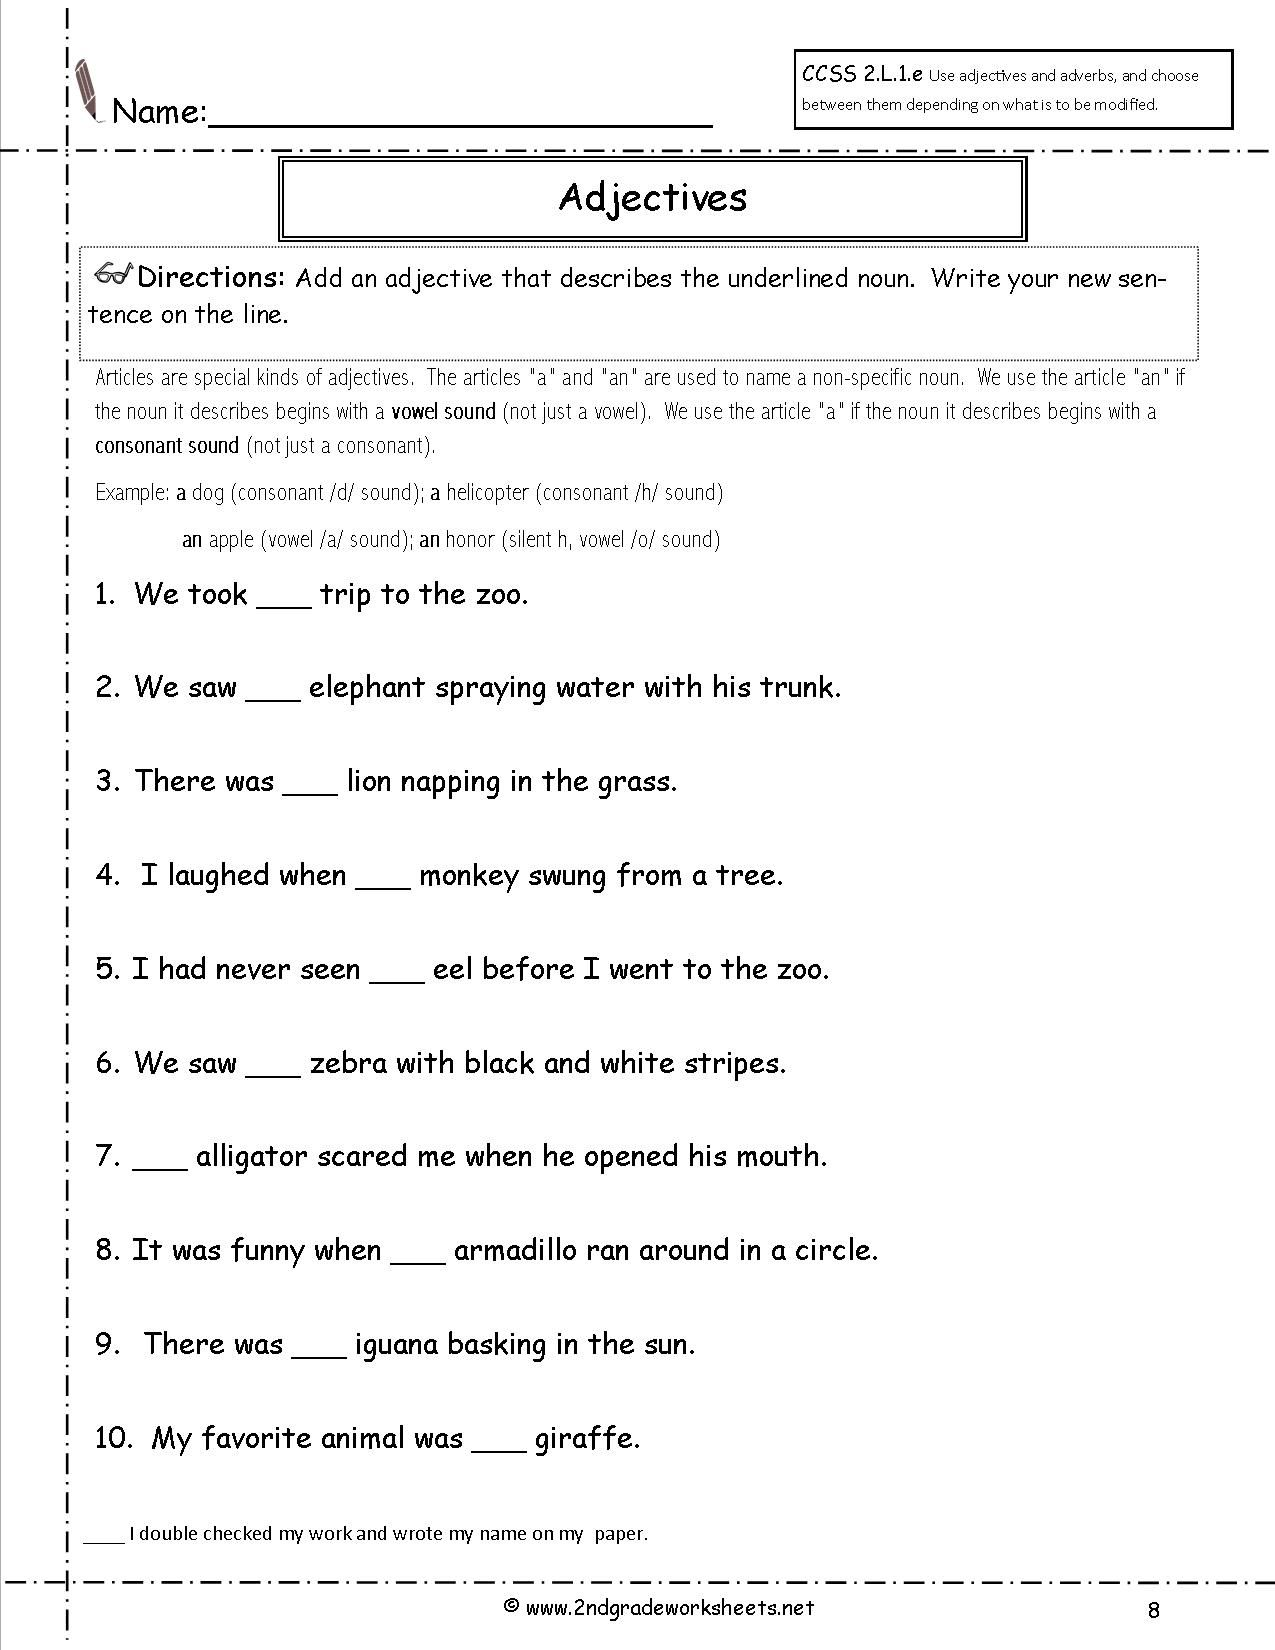 9 Memorable Reading Worksheets Printable Di 2020 Matematika